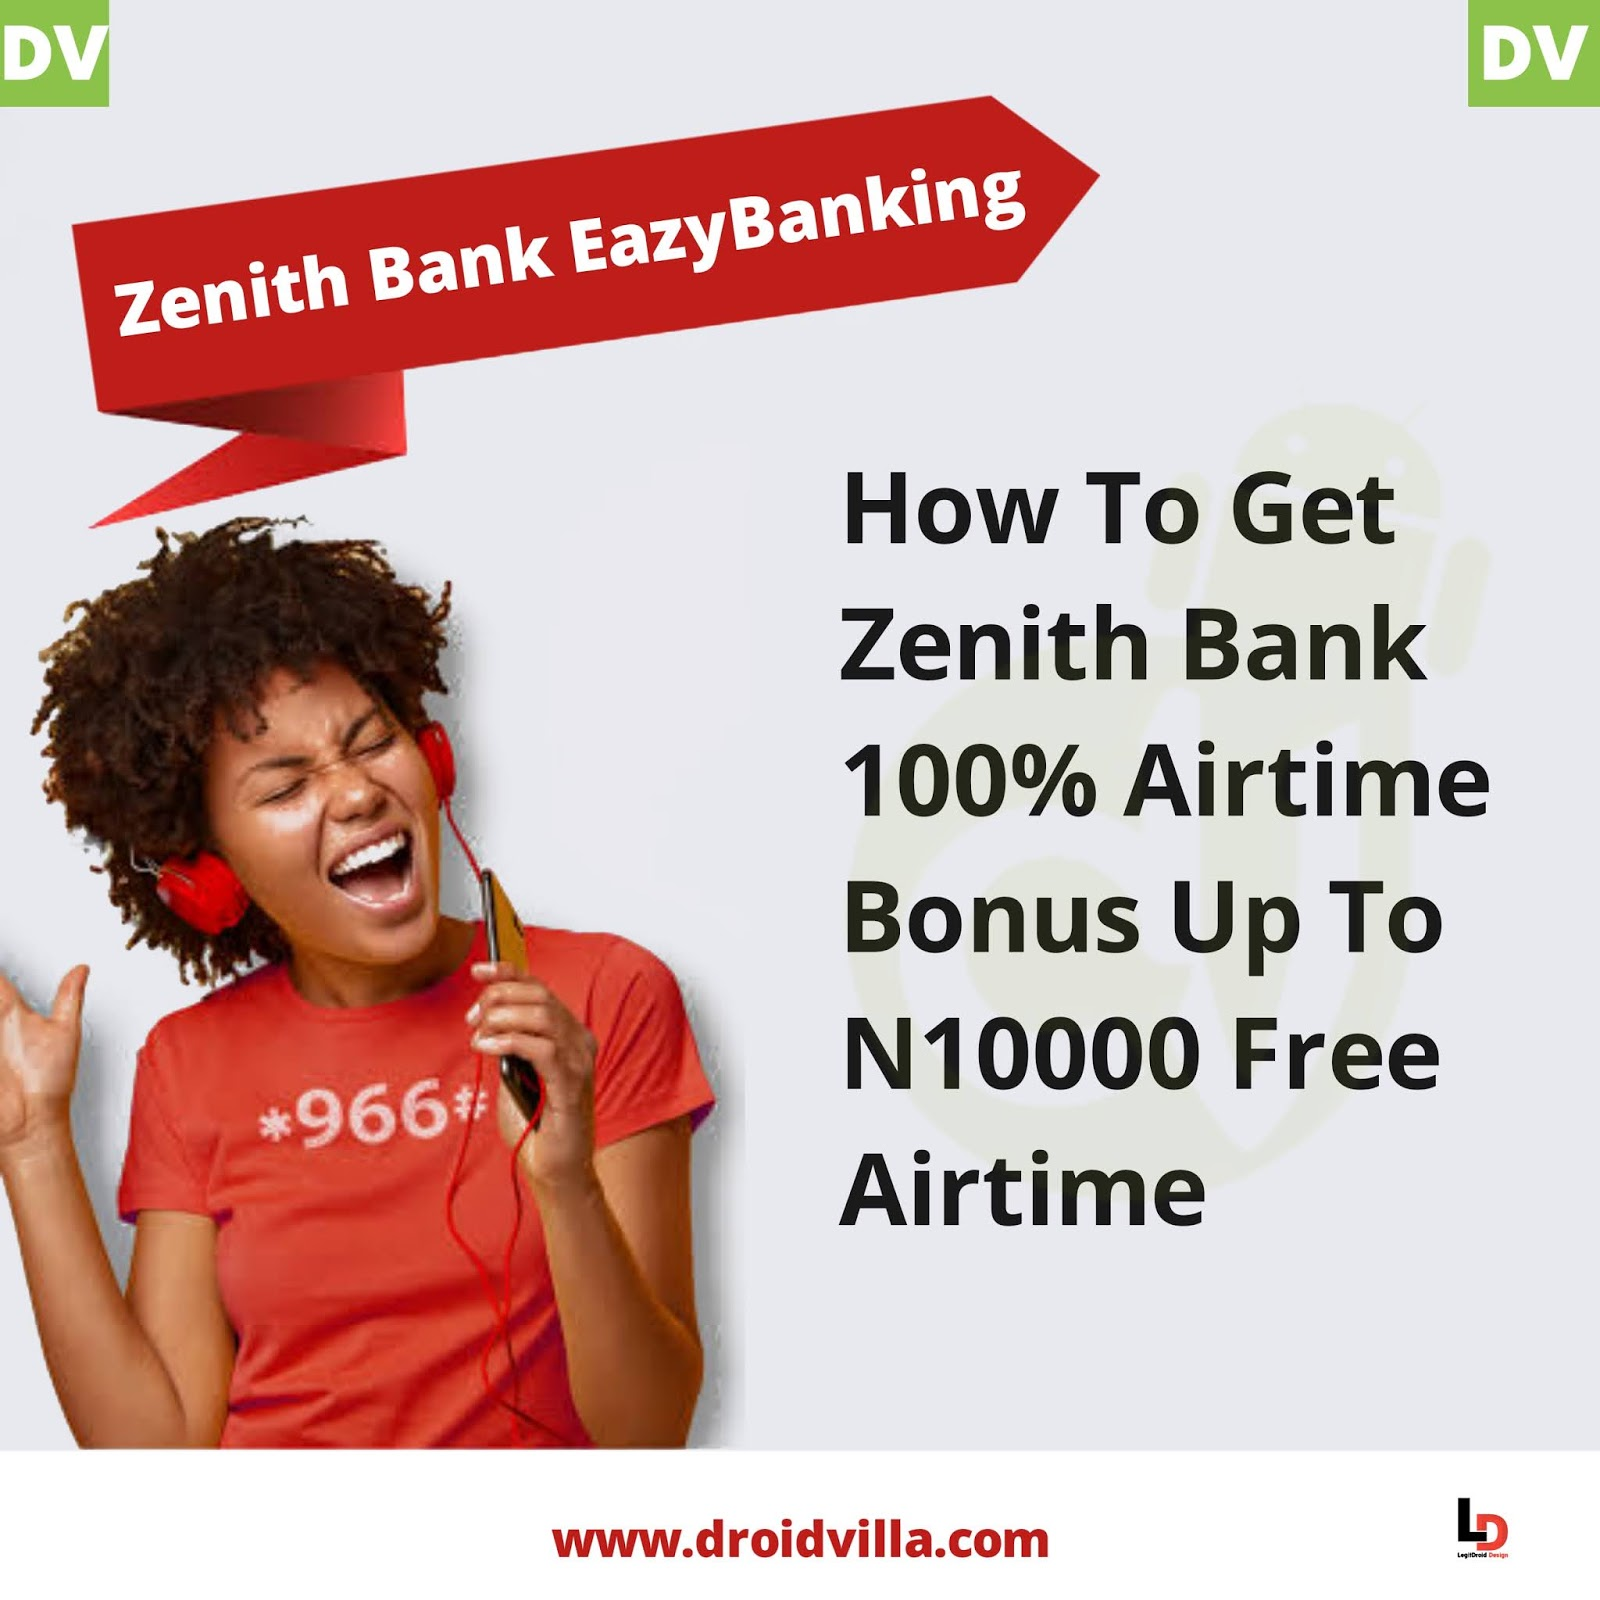 How To Get Zenith Bank 100% Airtime Bonus Up To N10000 Free Airtime